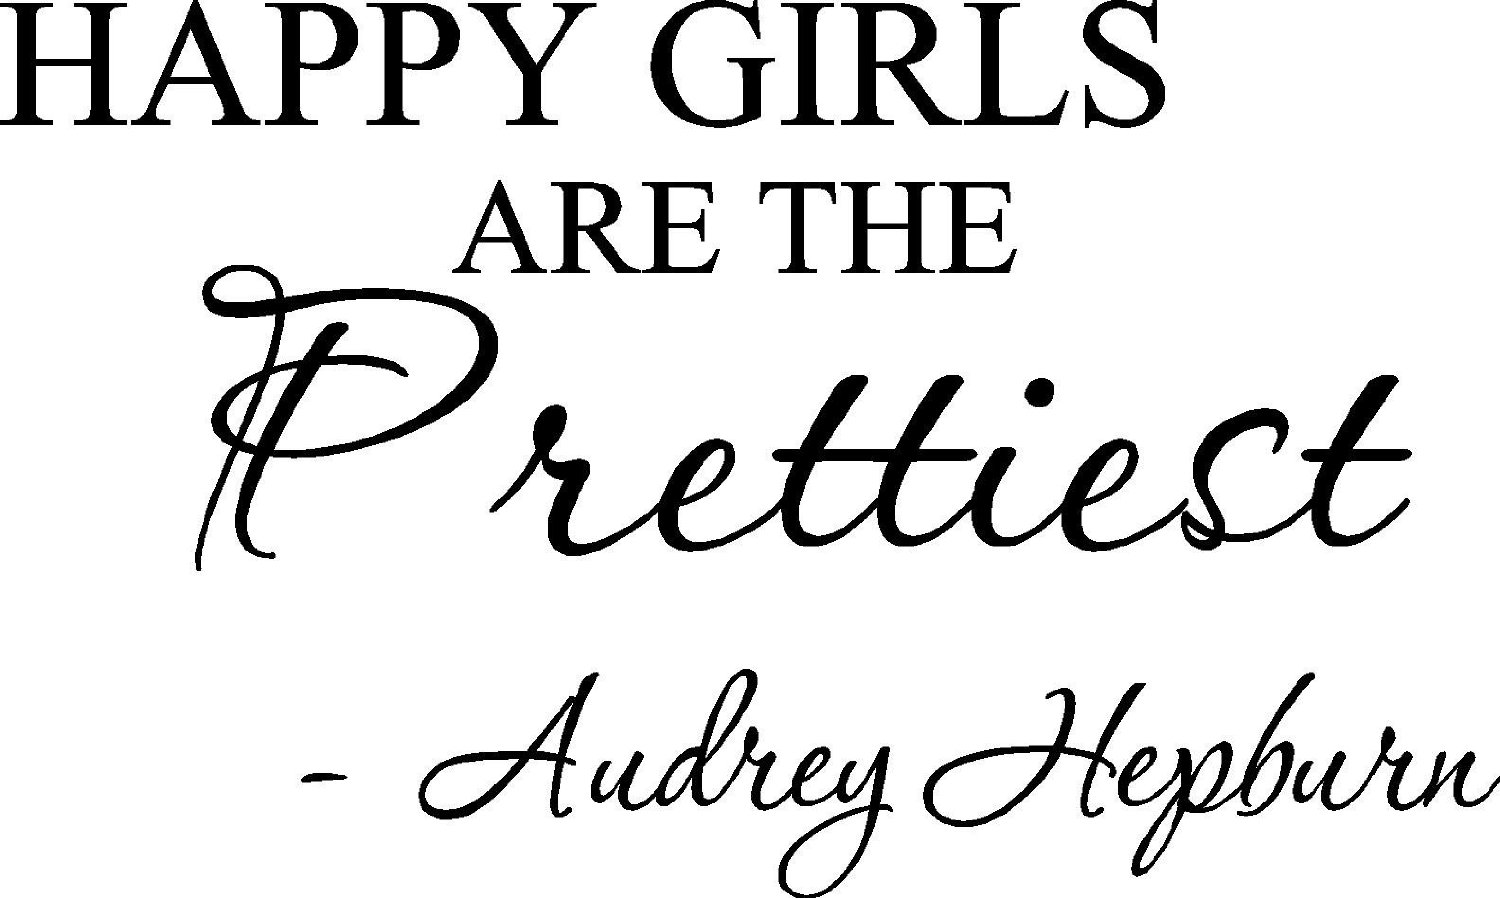 Happy girls are the prettiest. Audrey Hepburn. Vinyl wall art Inspirational quotes and saying home decor decal sticker(China (Mainland))